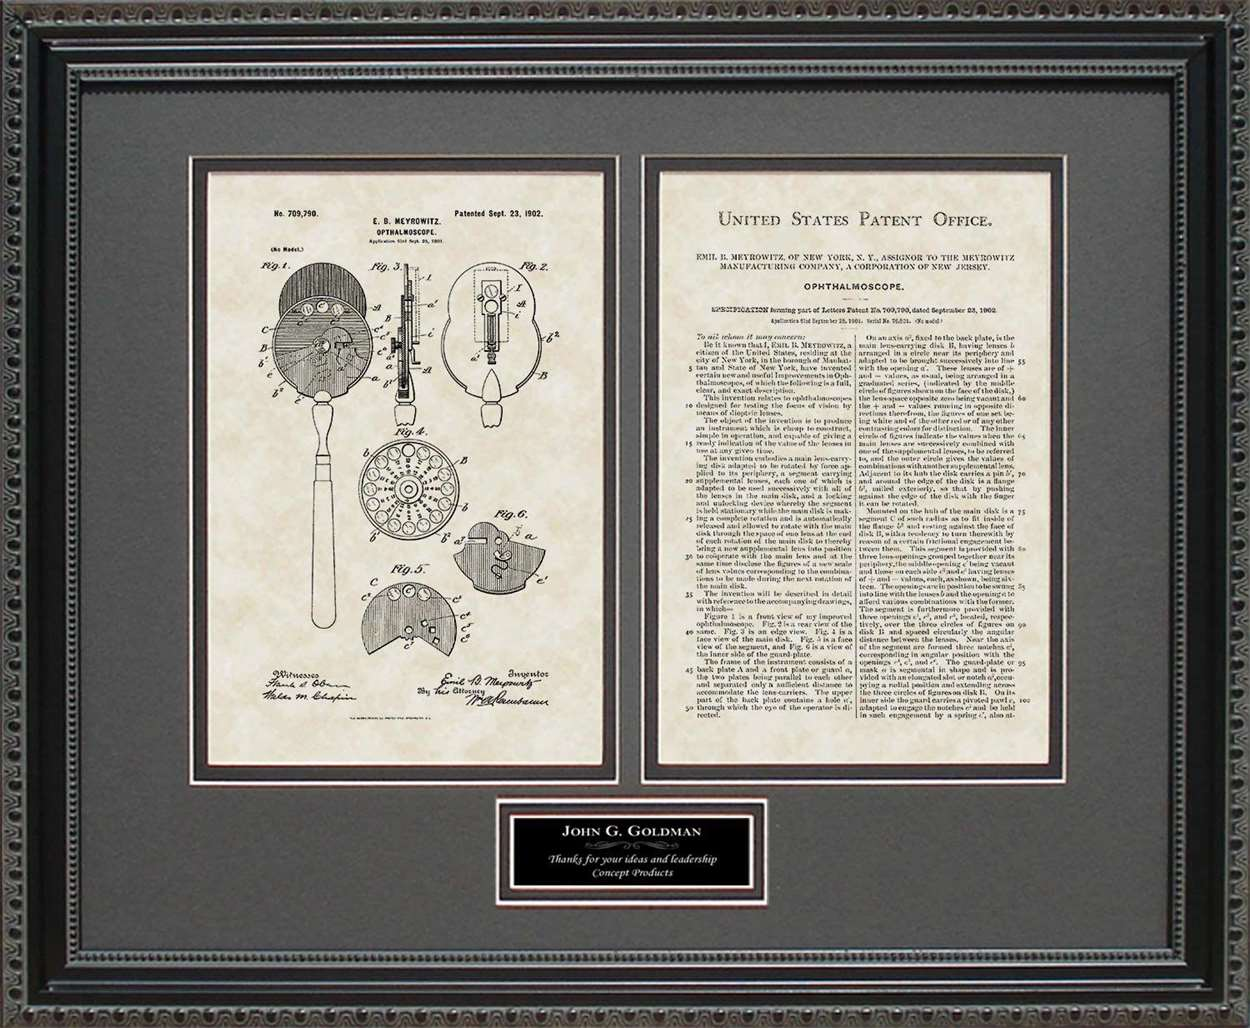 Personalized Opthalmoscope Patent, Art & Copy, Meyrowitz, 1902